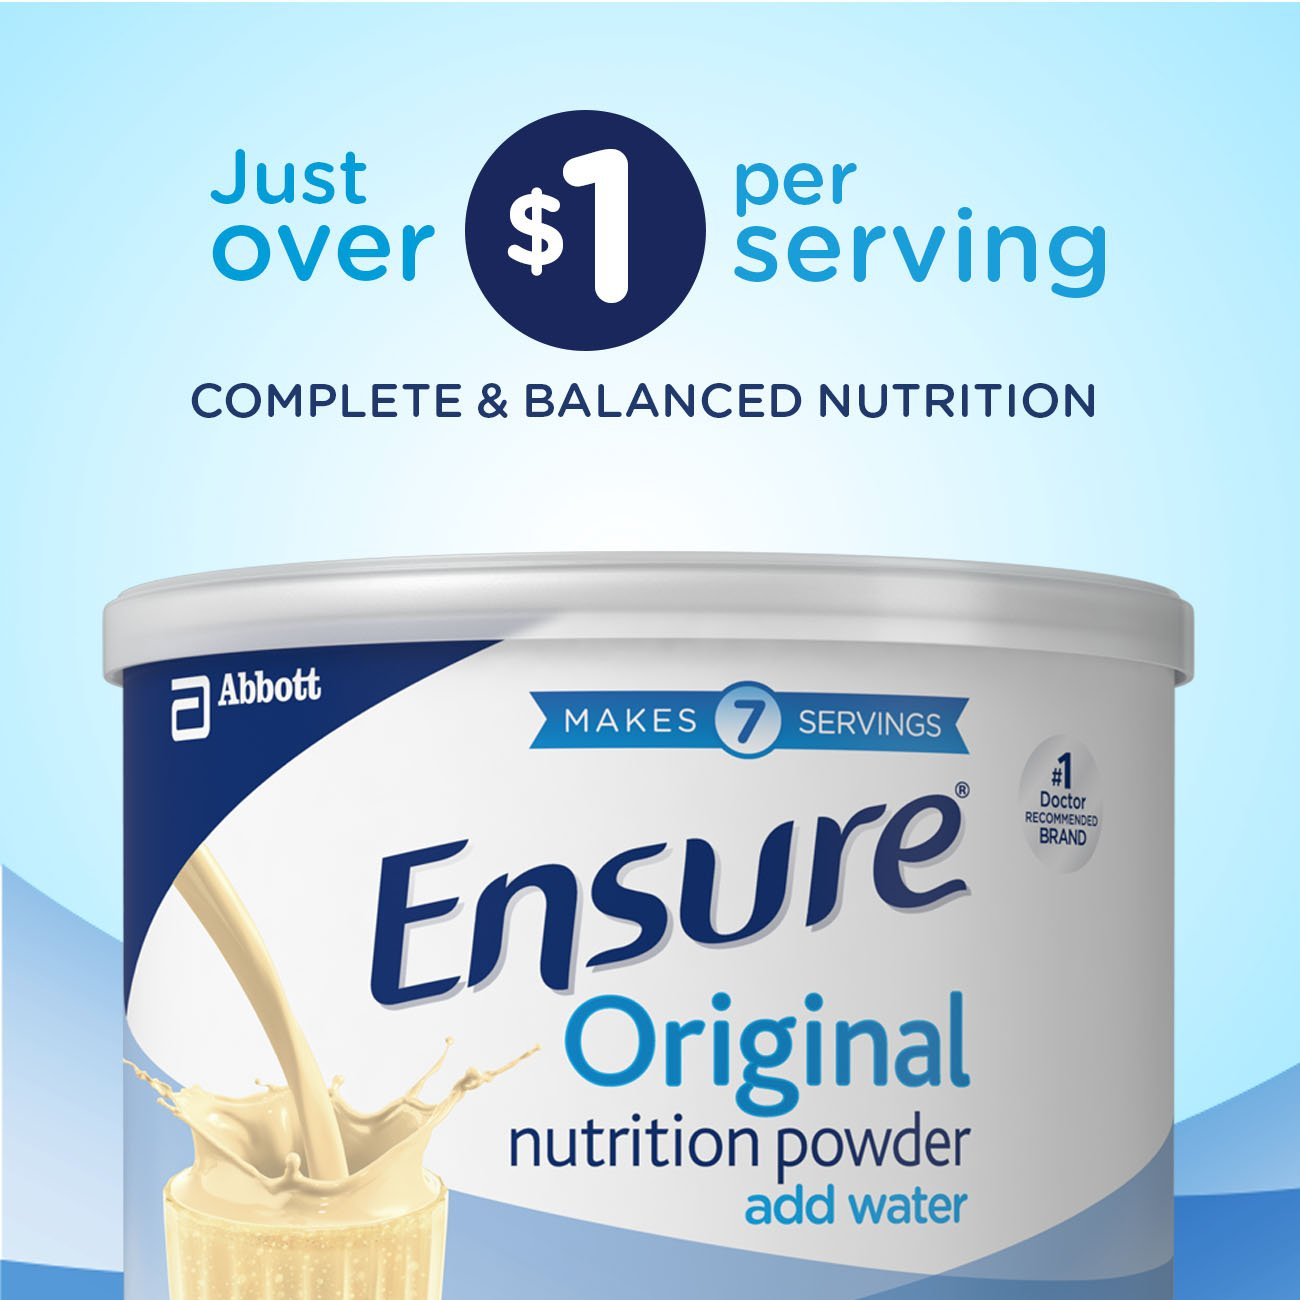 Ensure Original Nutrition Powder with 9 grams of protein, Meal Replacement, Vanilla, 14 oz, 6 count by Ensure (Image #11)